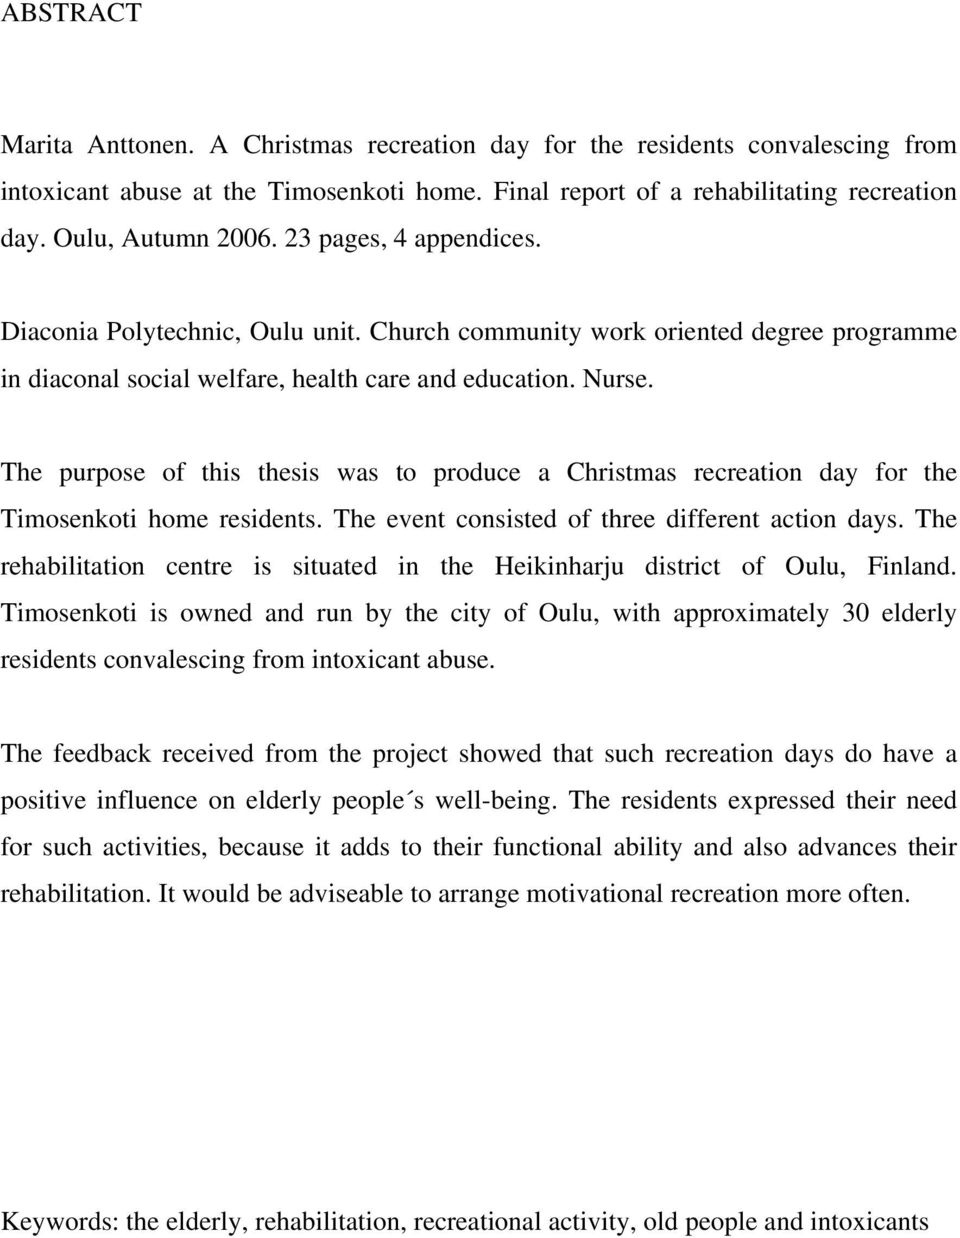 The purpose of this thesis was to produce a Christmas recreation day for the Timosenkoti home residents. The event consisted of three different action days.